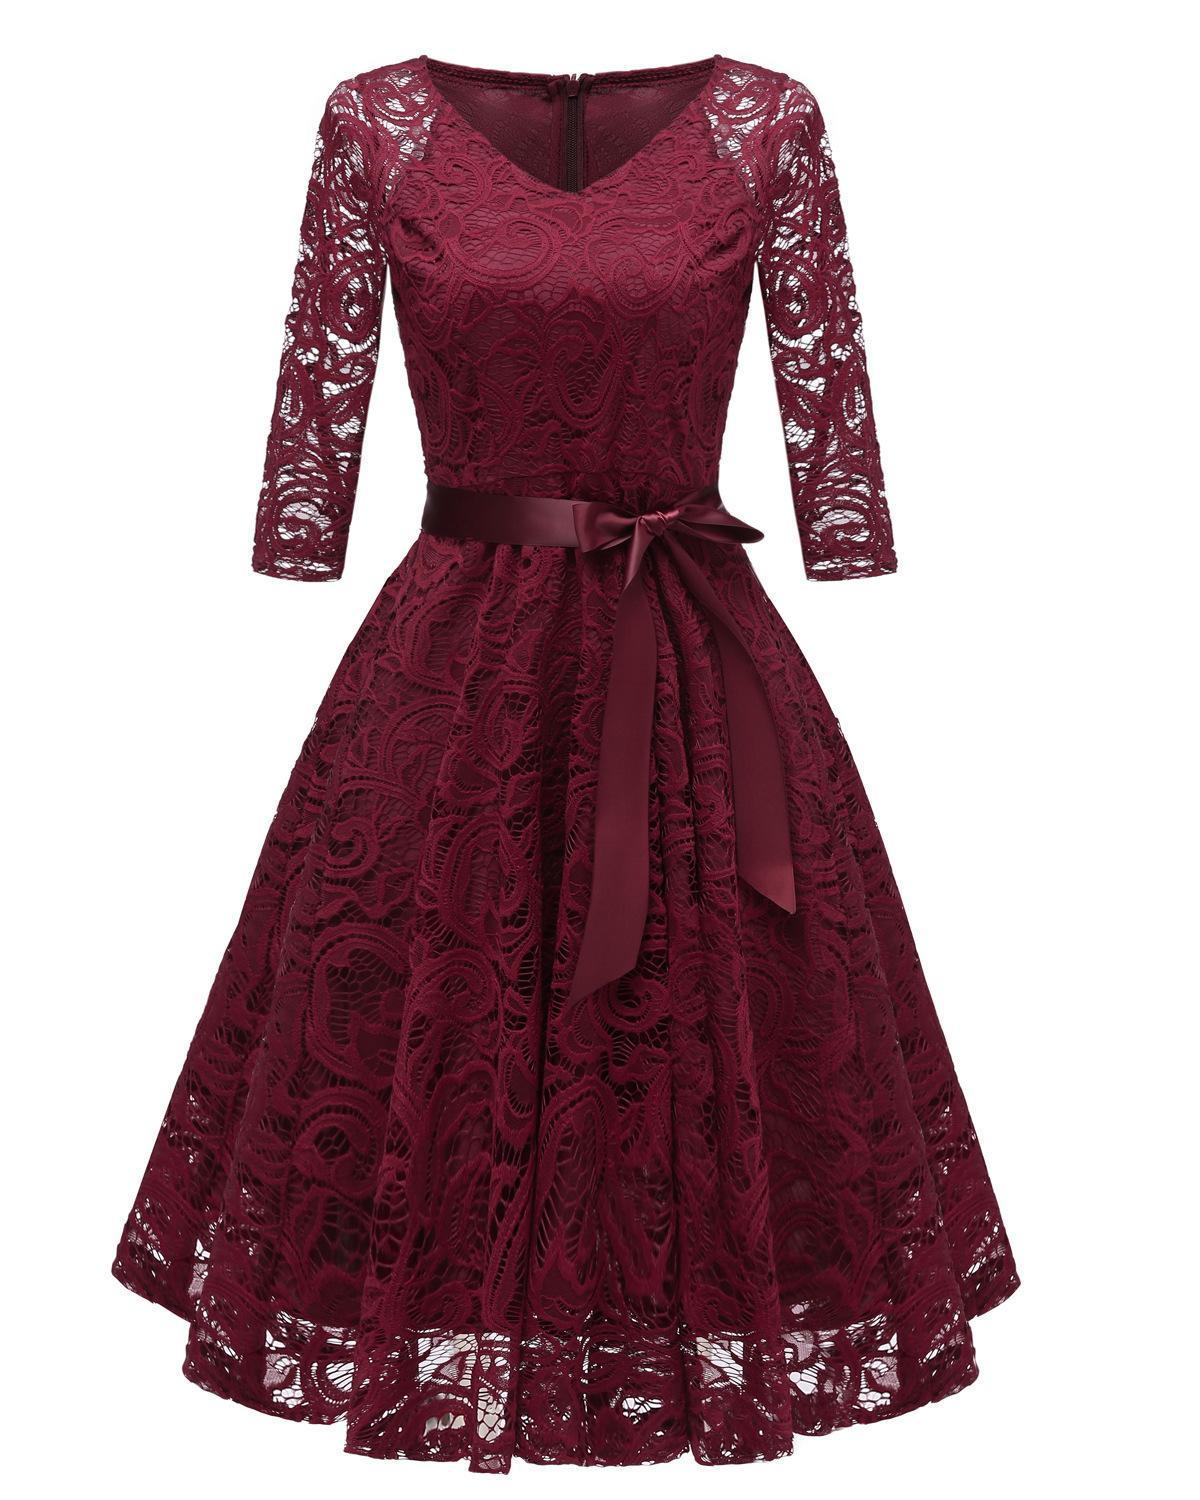 Long Sleeve Burgundy Lace   Cocktail     Dresses   Bow vestidos elegant Short Formal   Dress   party 2019 Homecoming   Dress